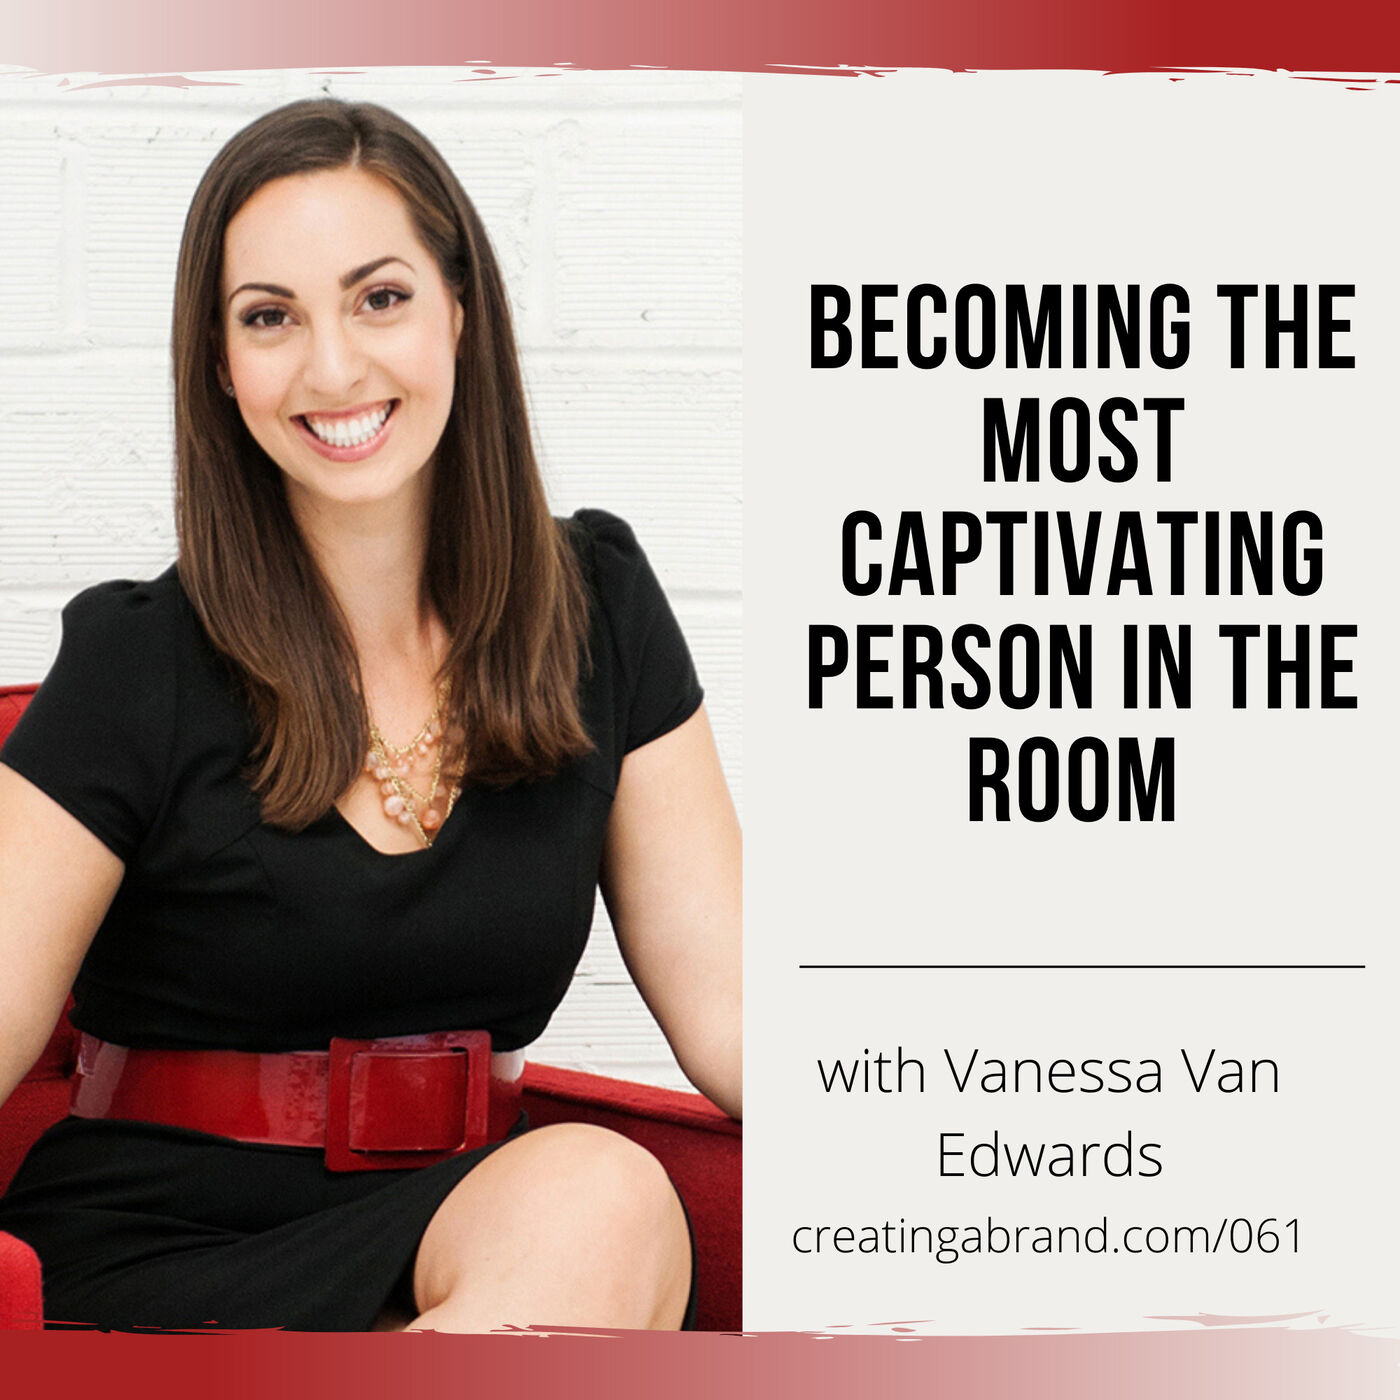 Becoming the Most Captivating Person in the Room with Vanessa Van Edwards